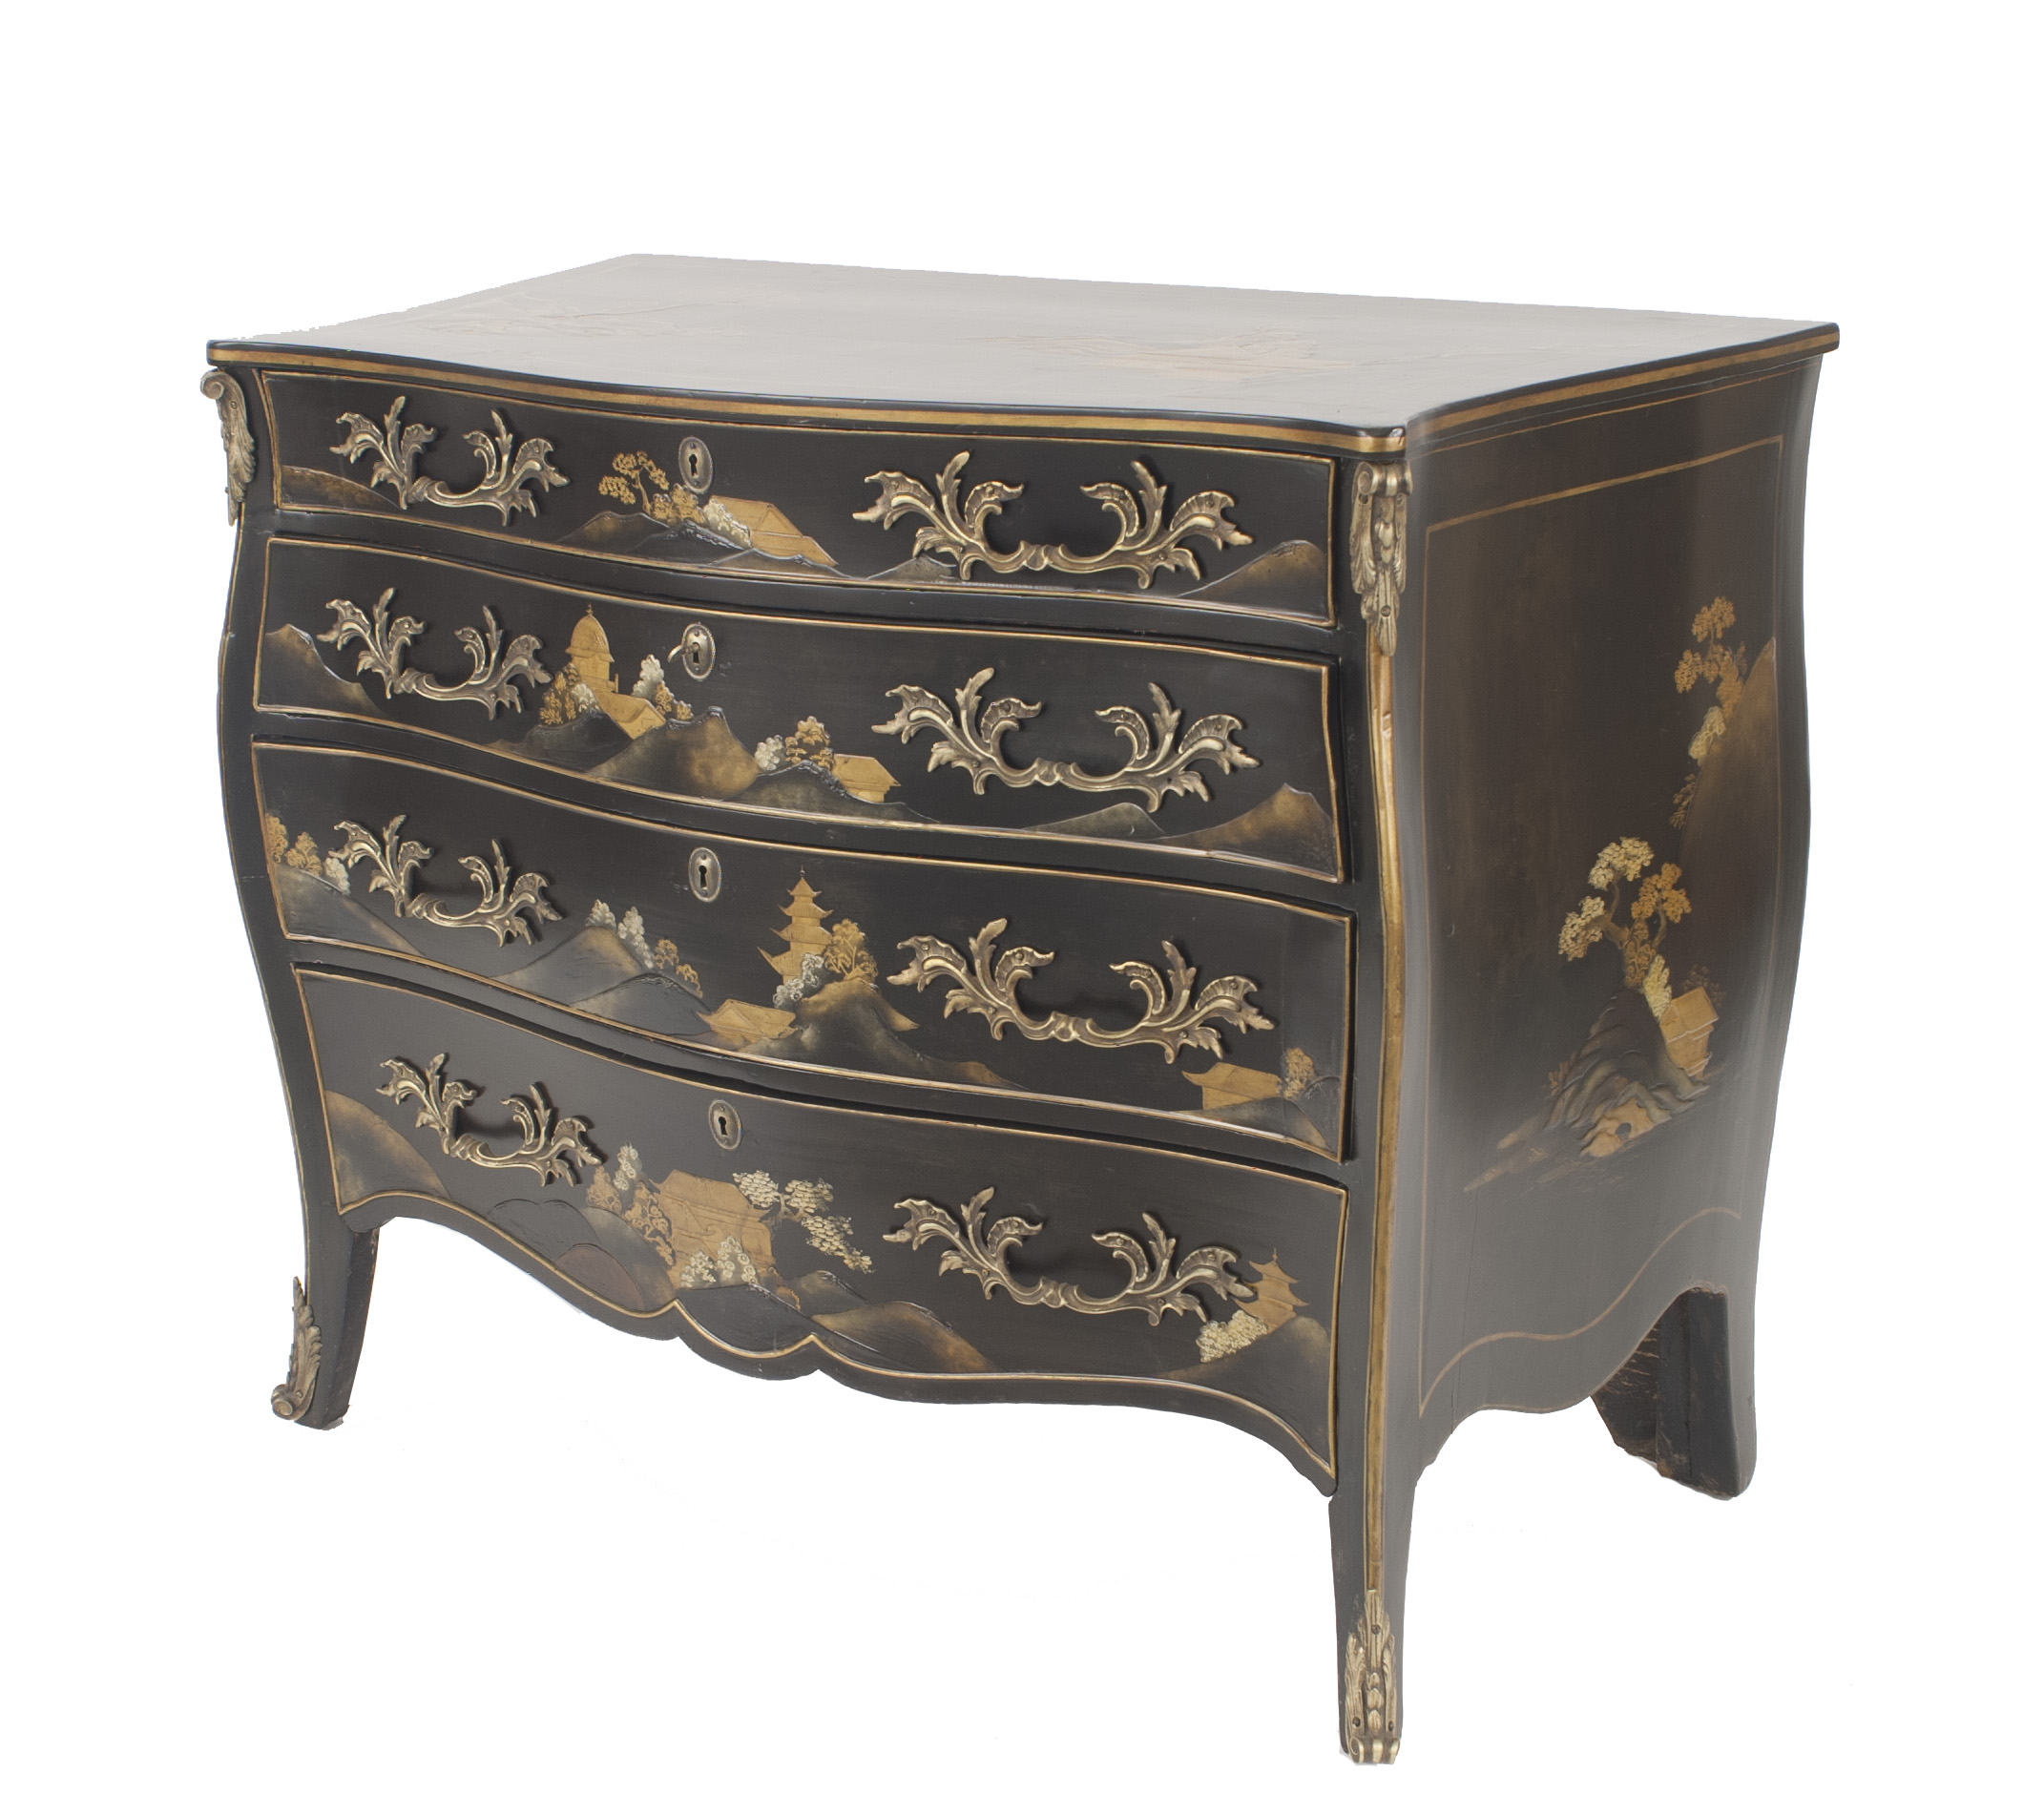 Commodes Louis 15 About Us French Louis Xv Style 20th Cent Black Lacquered Chinoiserie Decorated Commode With A Bombe Shape And 4 Drawers With Bronze Trim